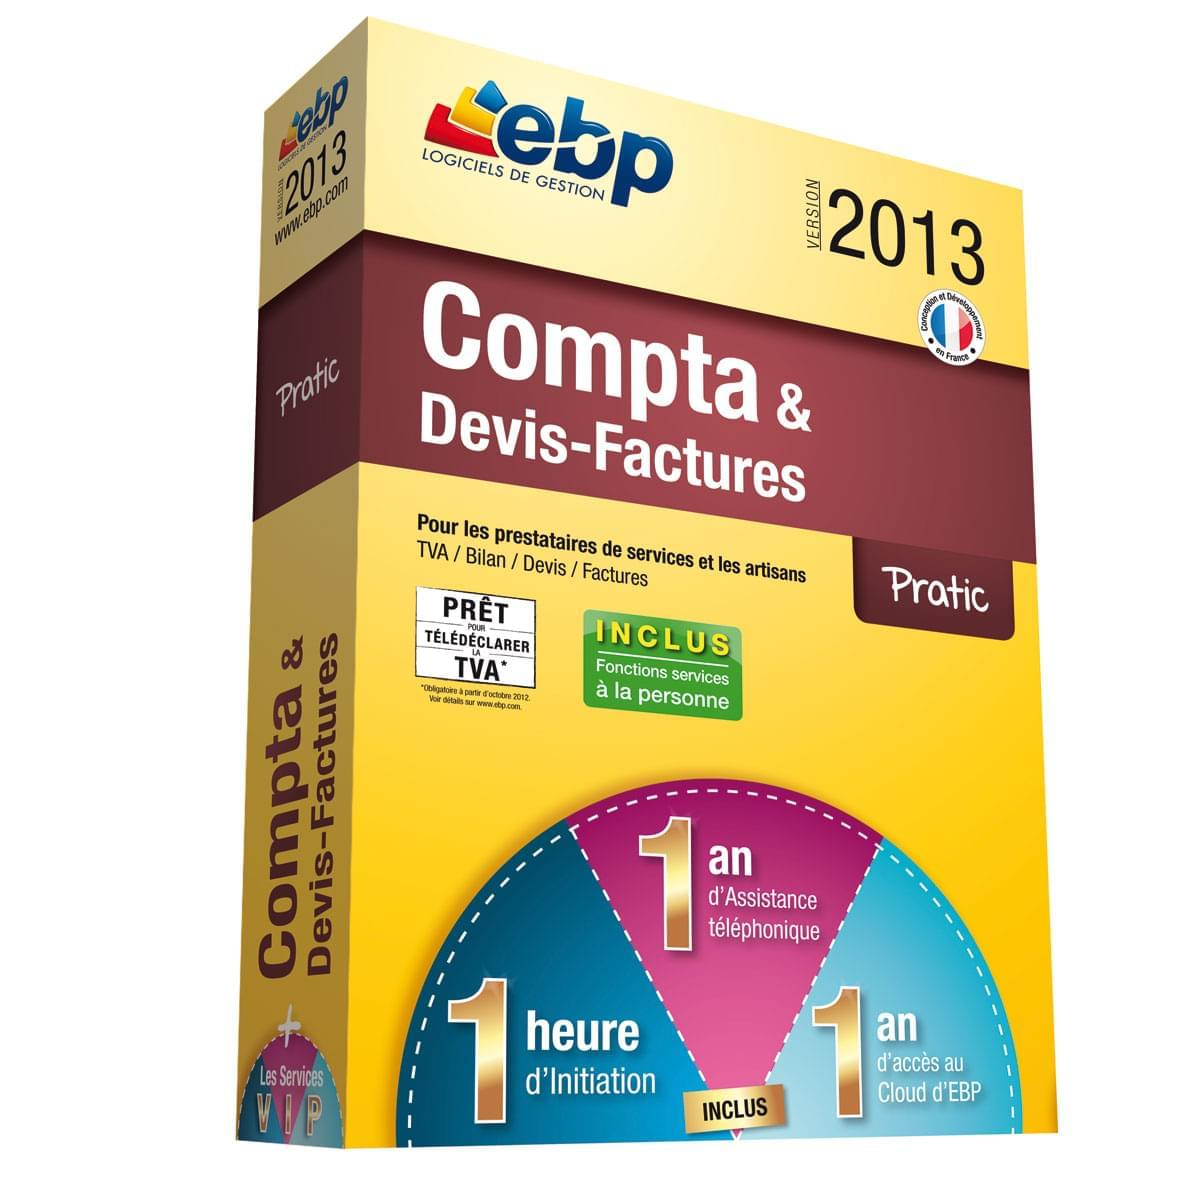 EBP Compta Devis Factures Pratic 2013  + Services VIP - Logiciel application - 0